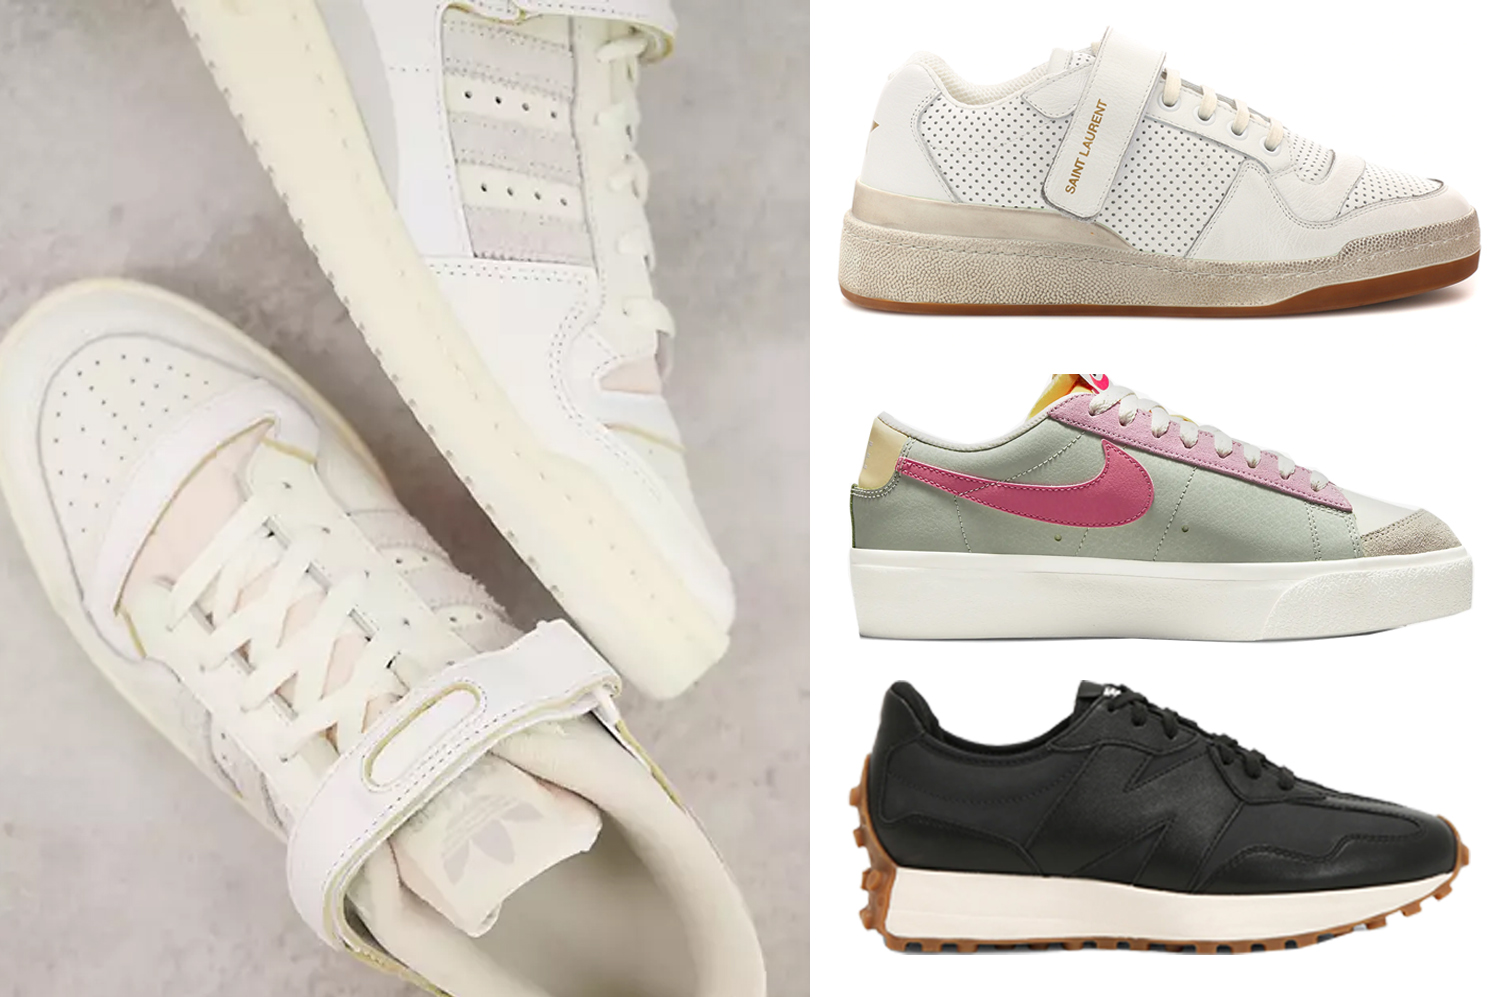 Sneakers Trends for Atumn 2021